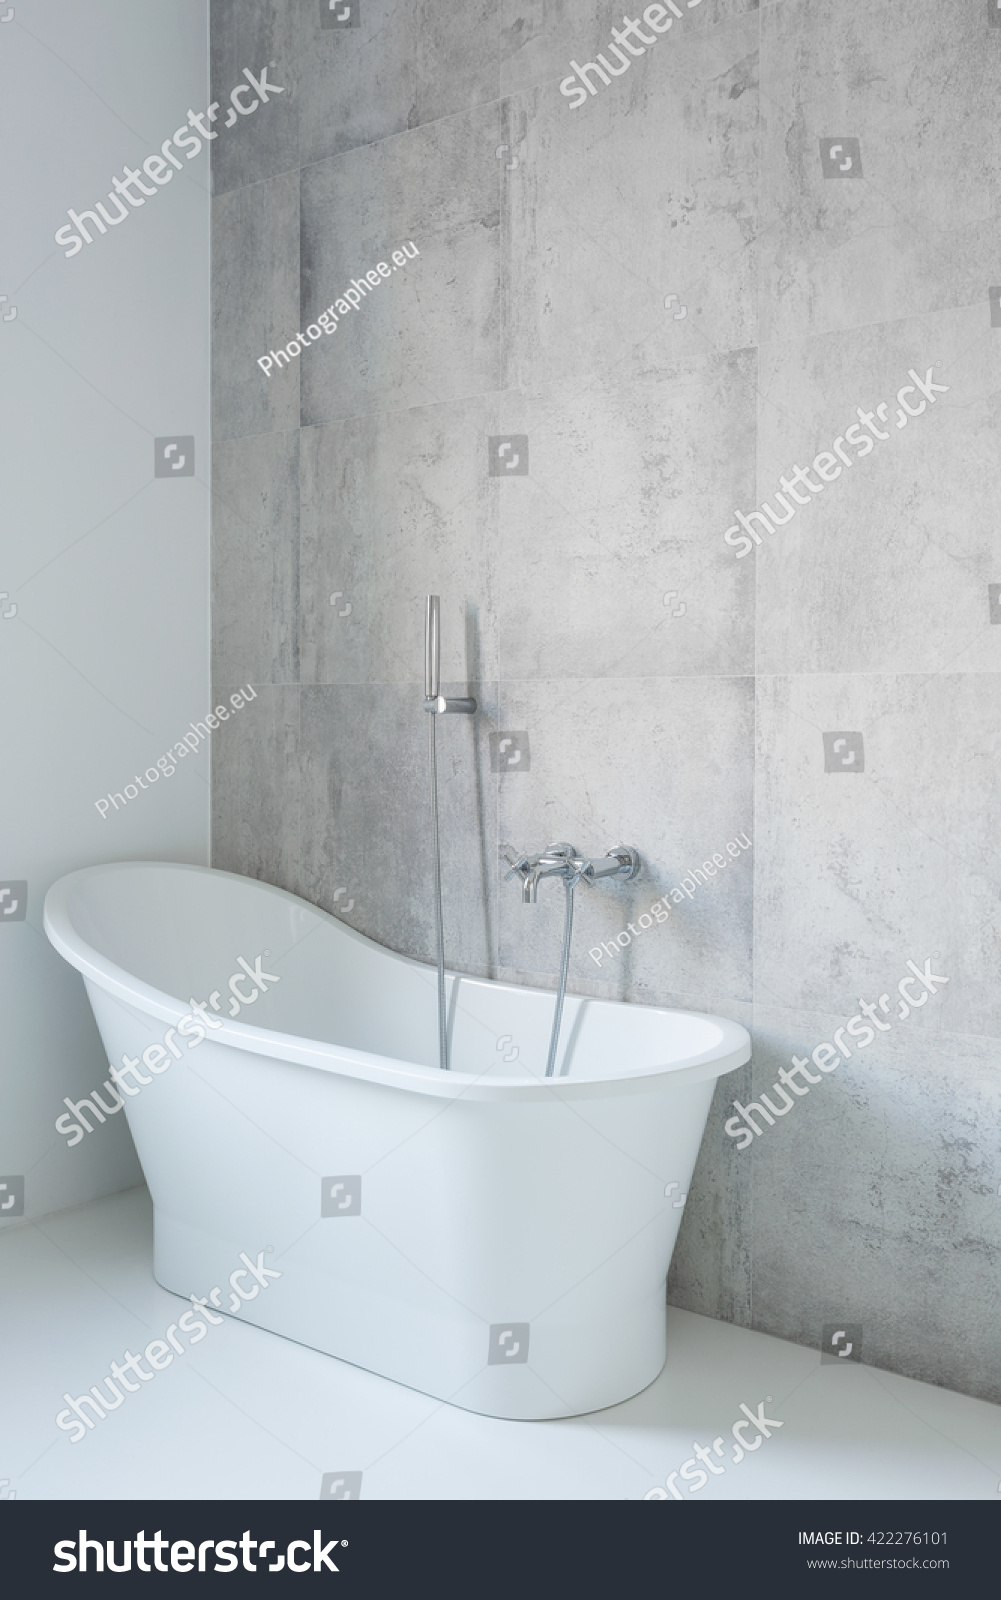 White Big Bathtub Modern Bathroom Decorative Stock Photo 422276101 ...